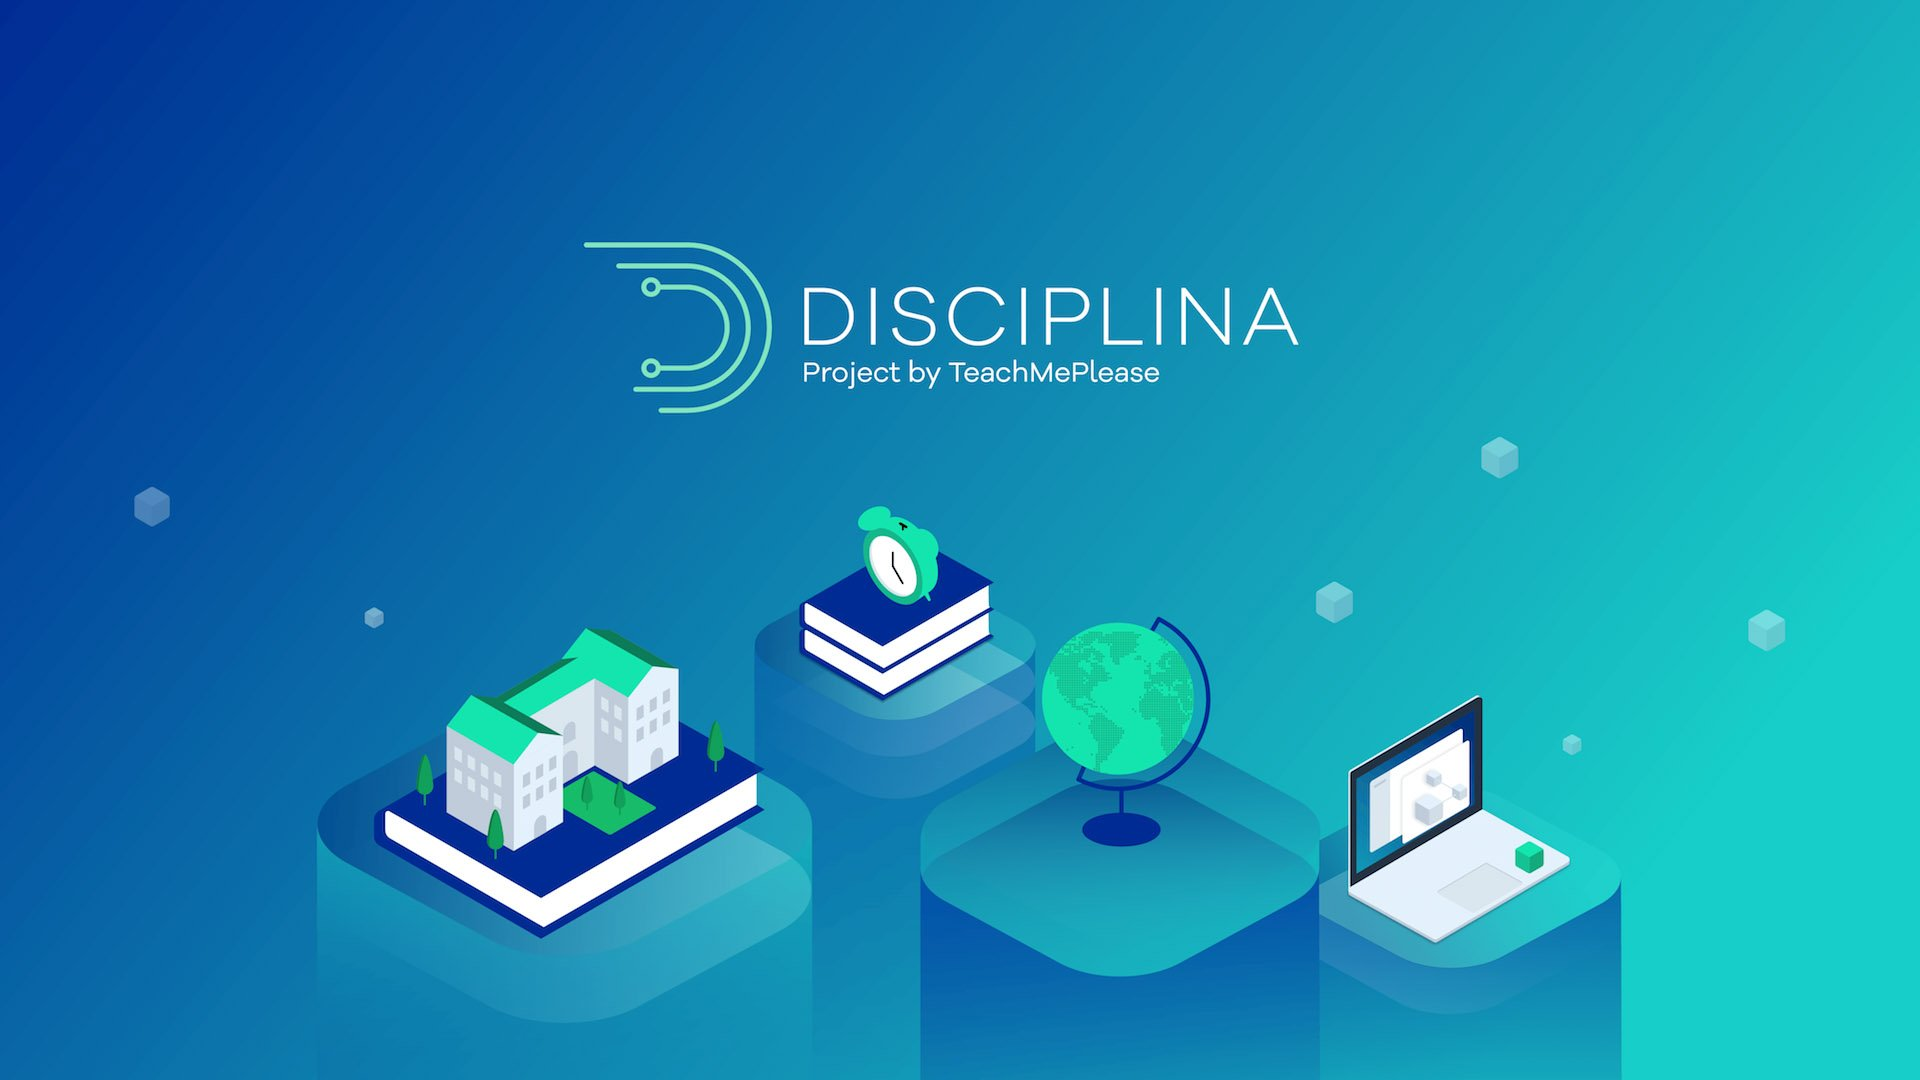 DISCIPLINA - First Blockchain for Recruiting and Education